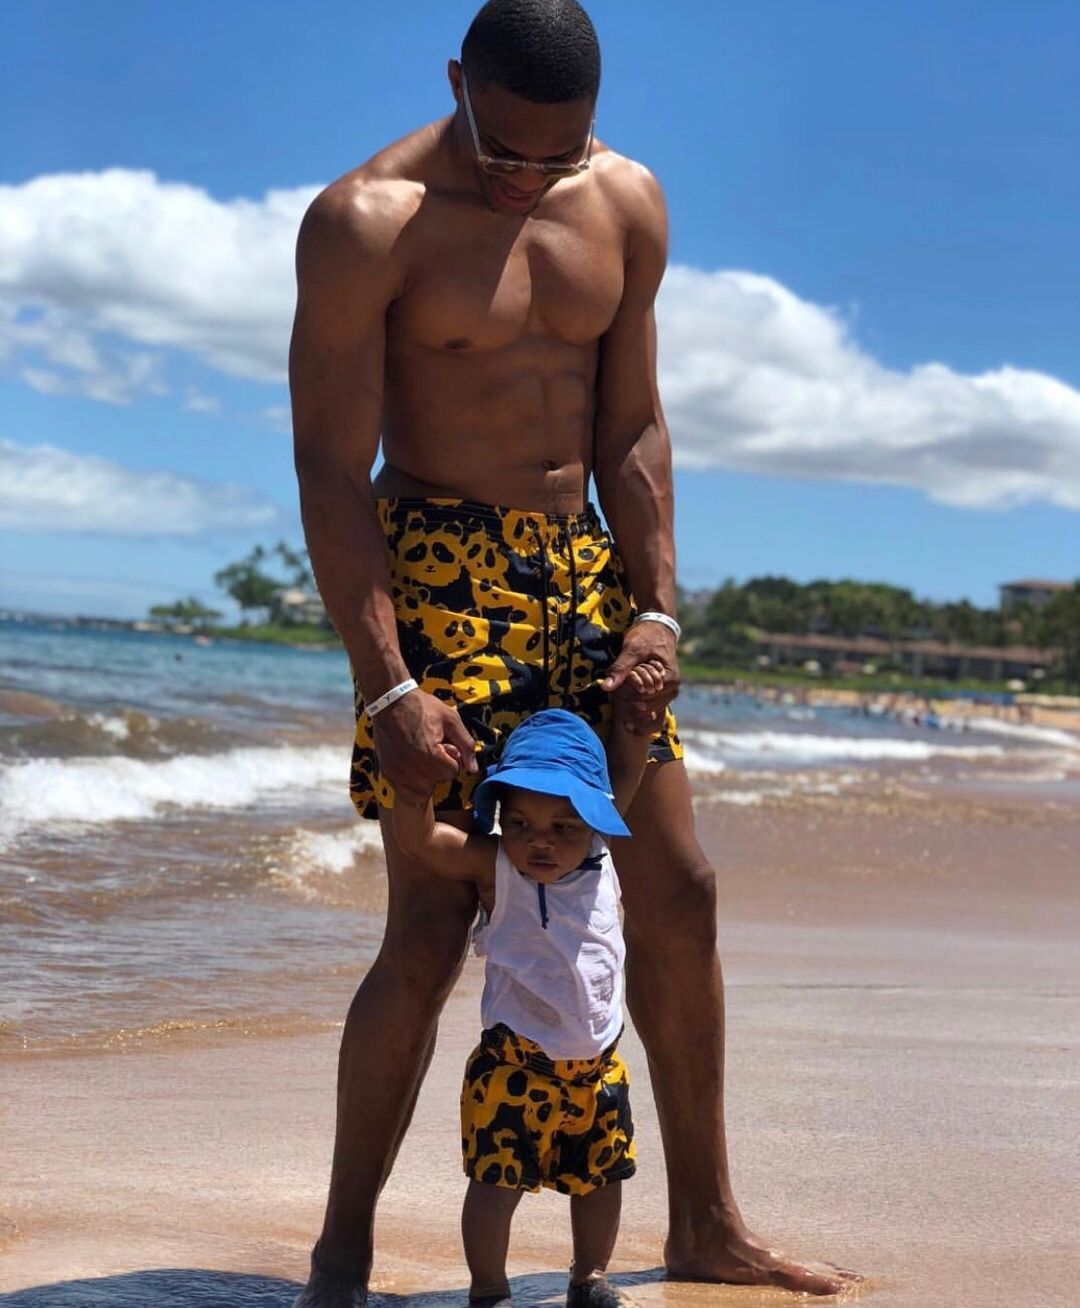 Who's ready for the beach 🏖? russwest44 and his King 👑 in